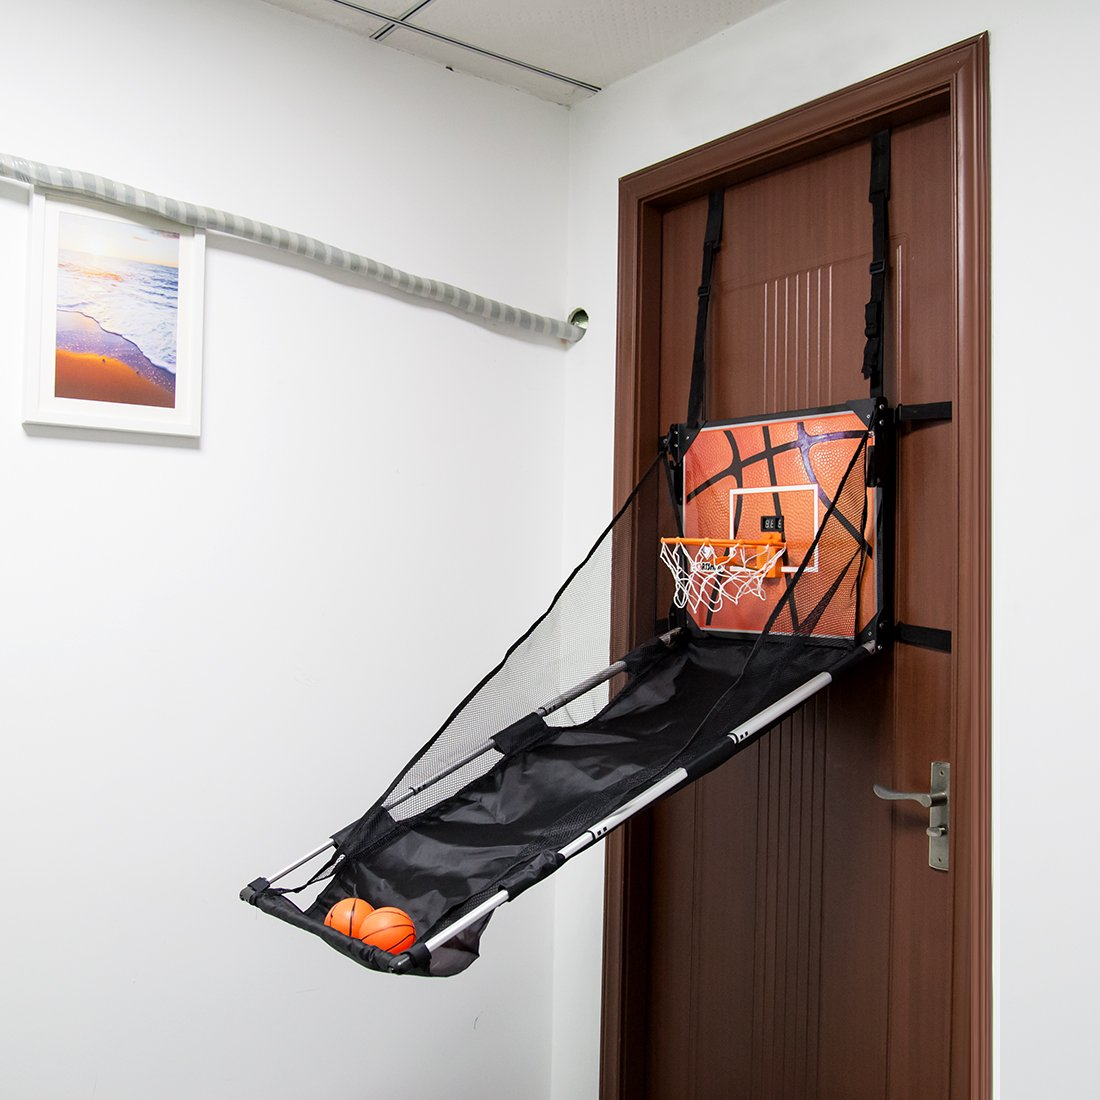 Basketball Shooting Machine PINCHUANGHUI Door Hanging Automatic Scoring Basketball Shooting Machine Foldable Shooting Hoop - Main Black by PINCHUANGHUI (Image #6)